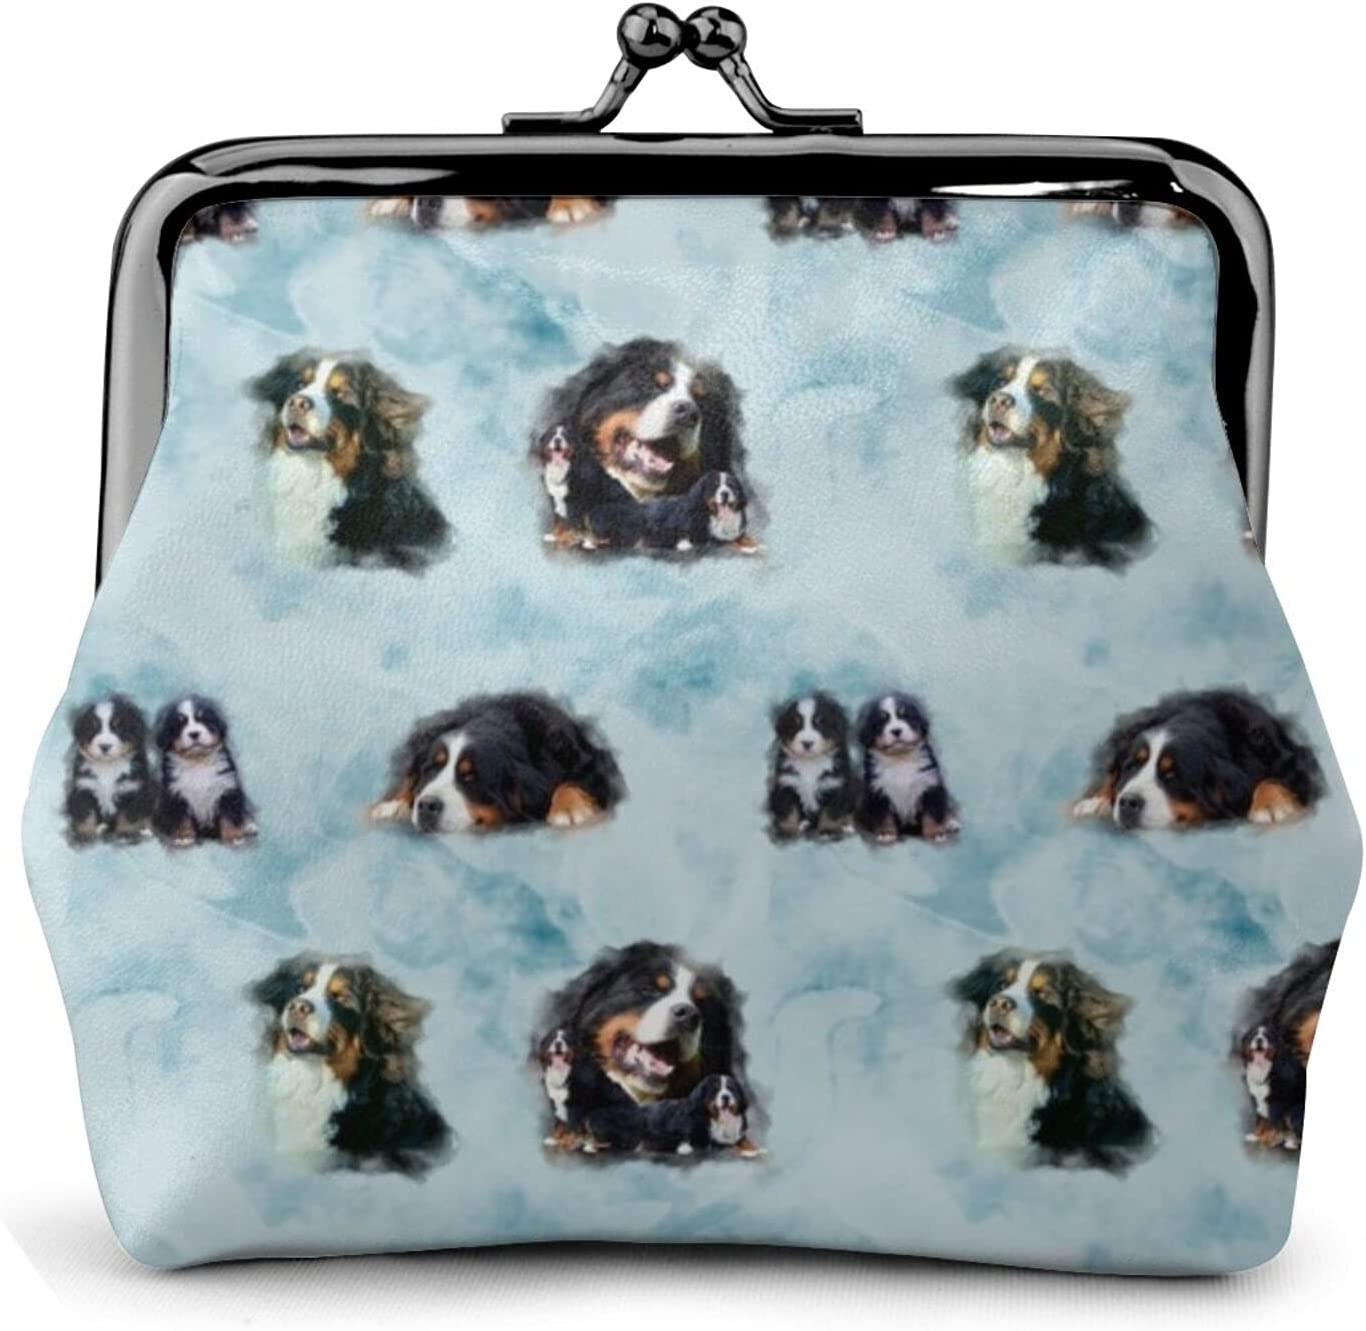 Bernese Watercolour 492 Leather Coin Purse Kiss Lock Change Pouch Vintage Clasp Closure Buckle Wallet Small Women Gift